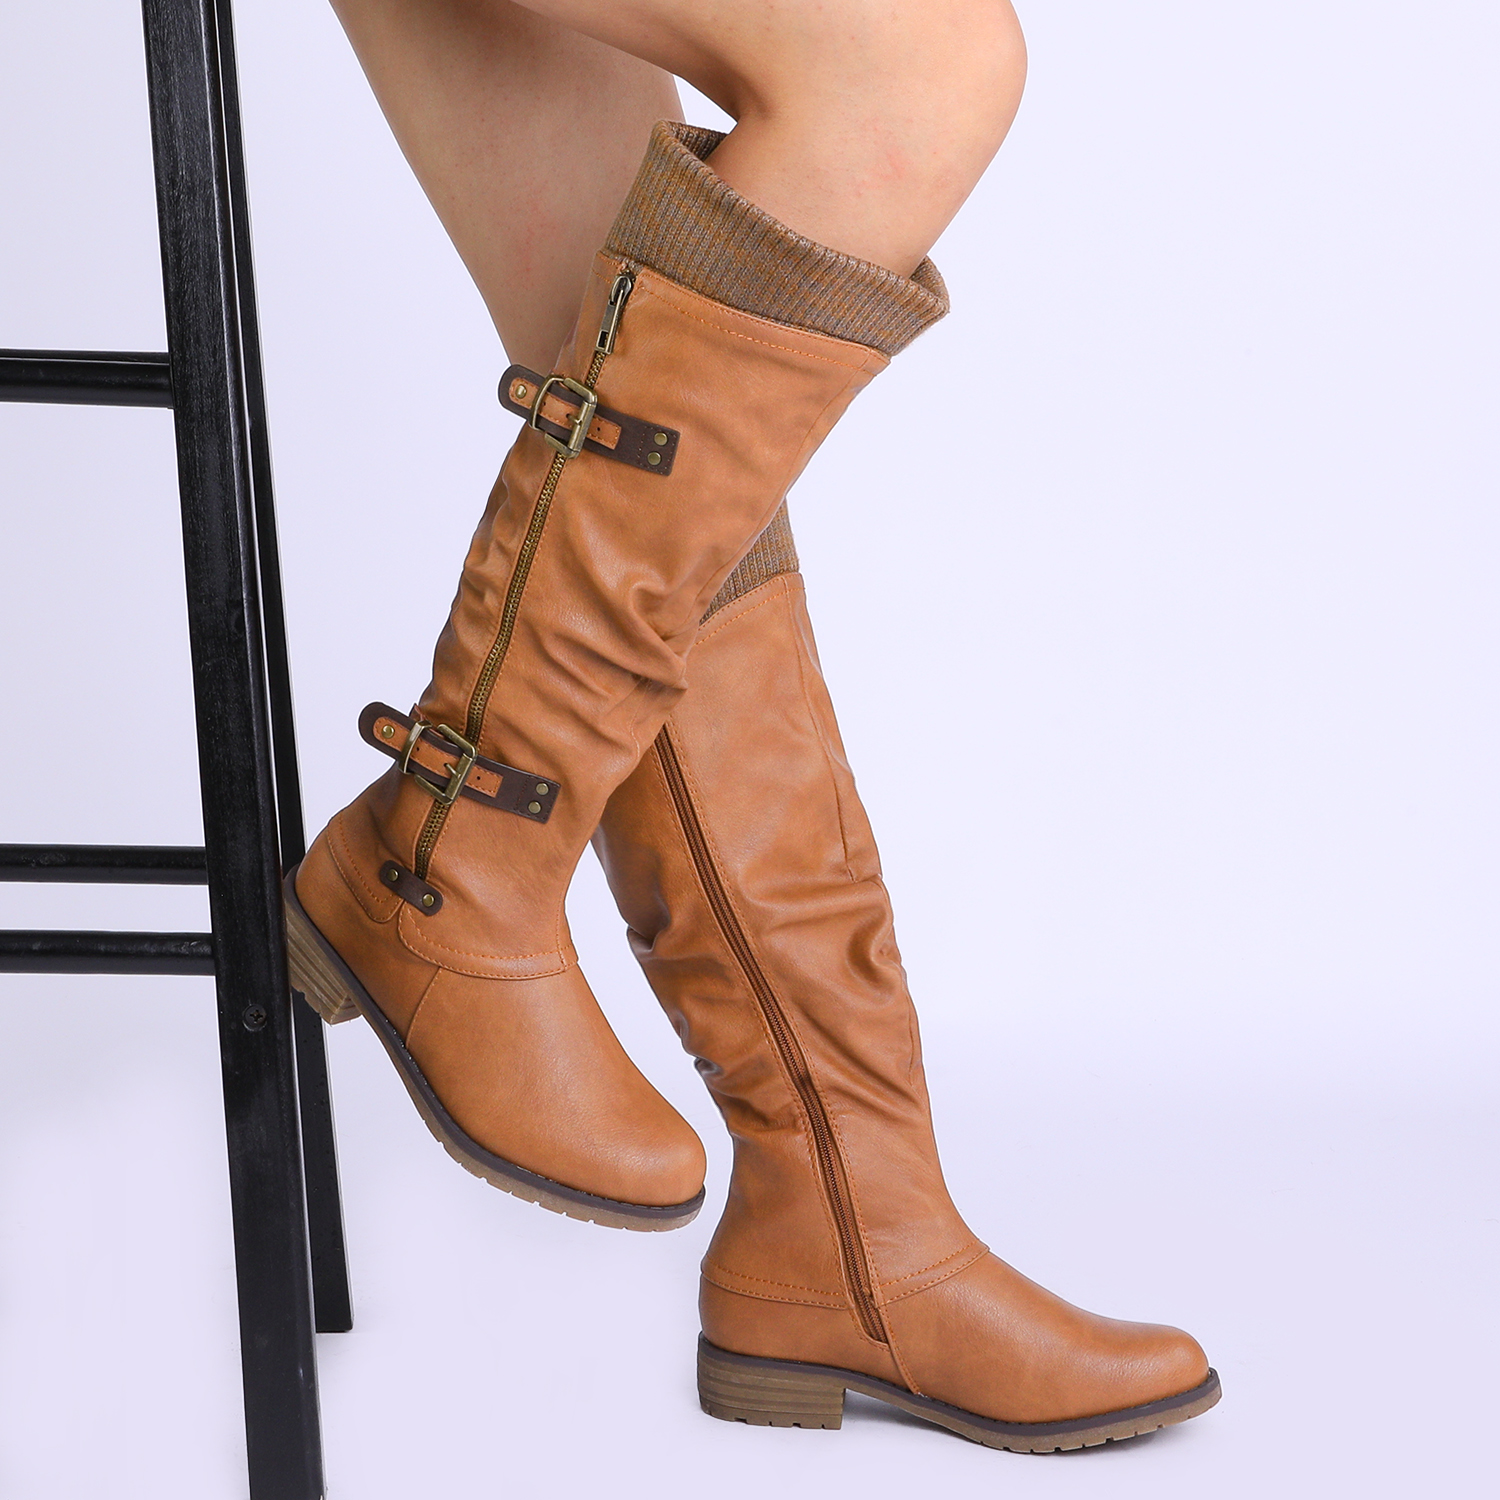 DREAM-PAIRS-Womens-DEPP-Cowgirl-Soft-PU-Leather-Combat-Knee-High-Riding-Boots thumbnail 25